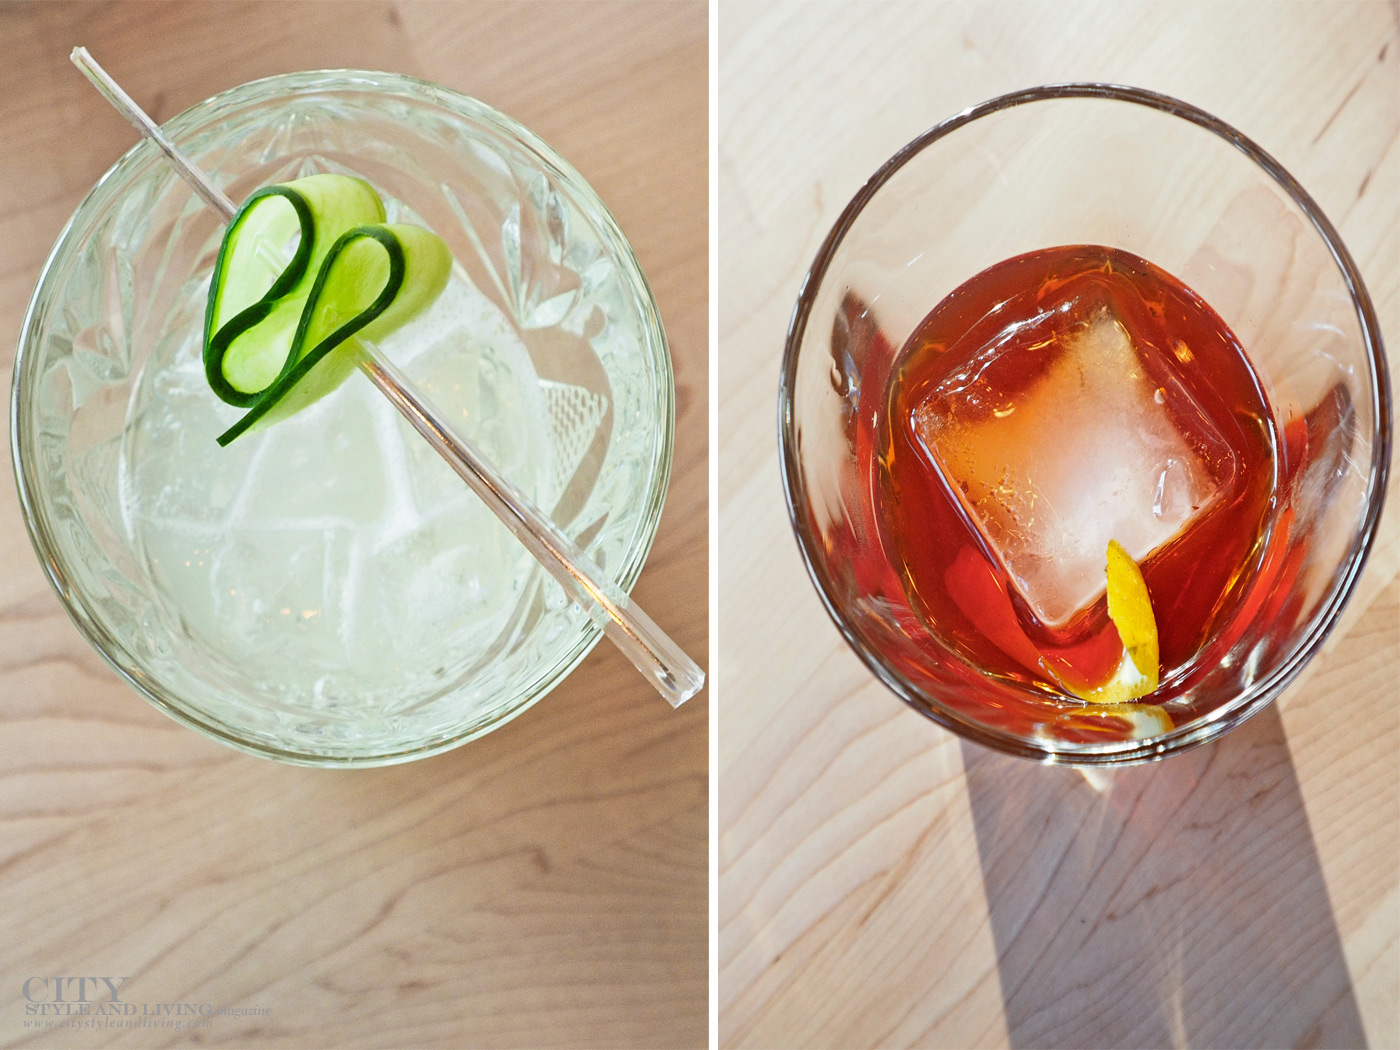 City Style and Living Magazine Imbibe wines and spirits non alcoholic gin and tonic and old fashioned